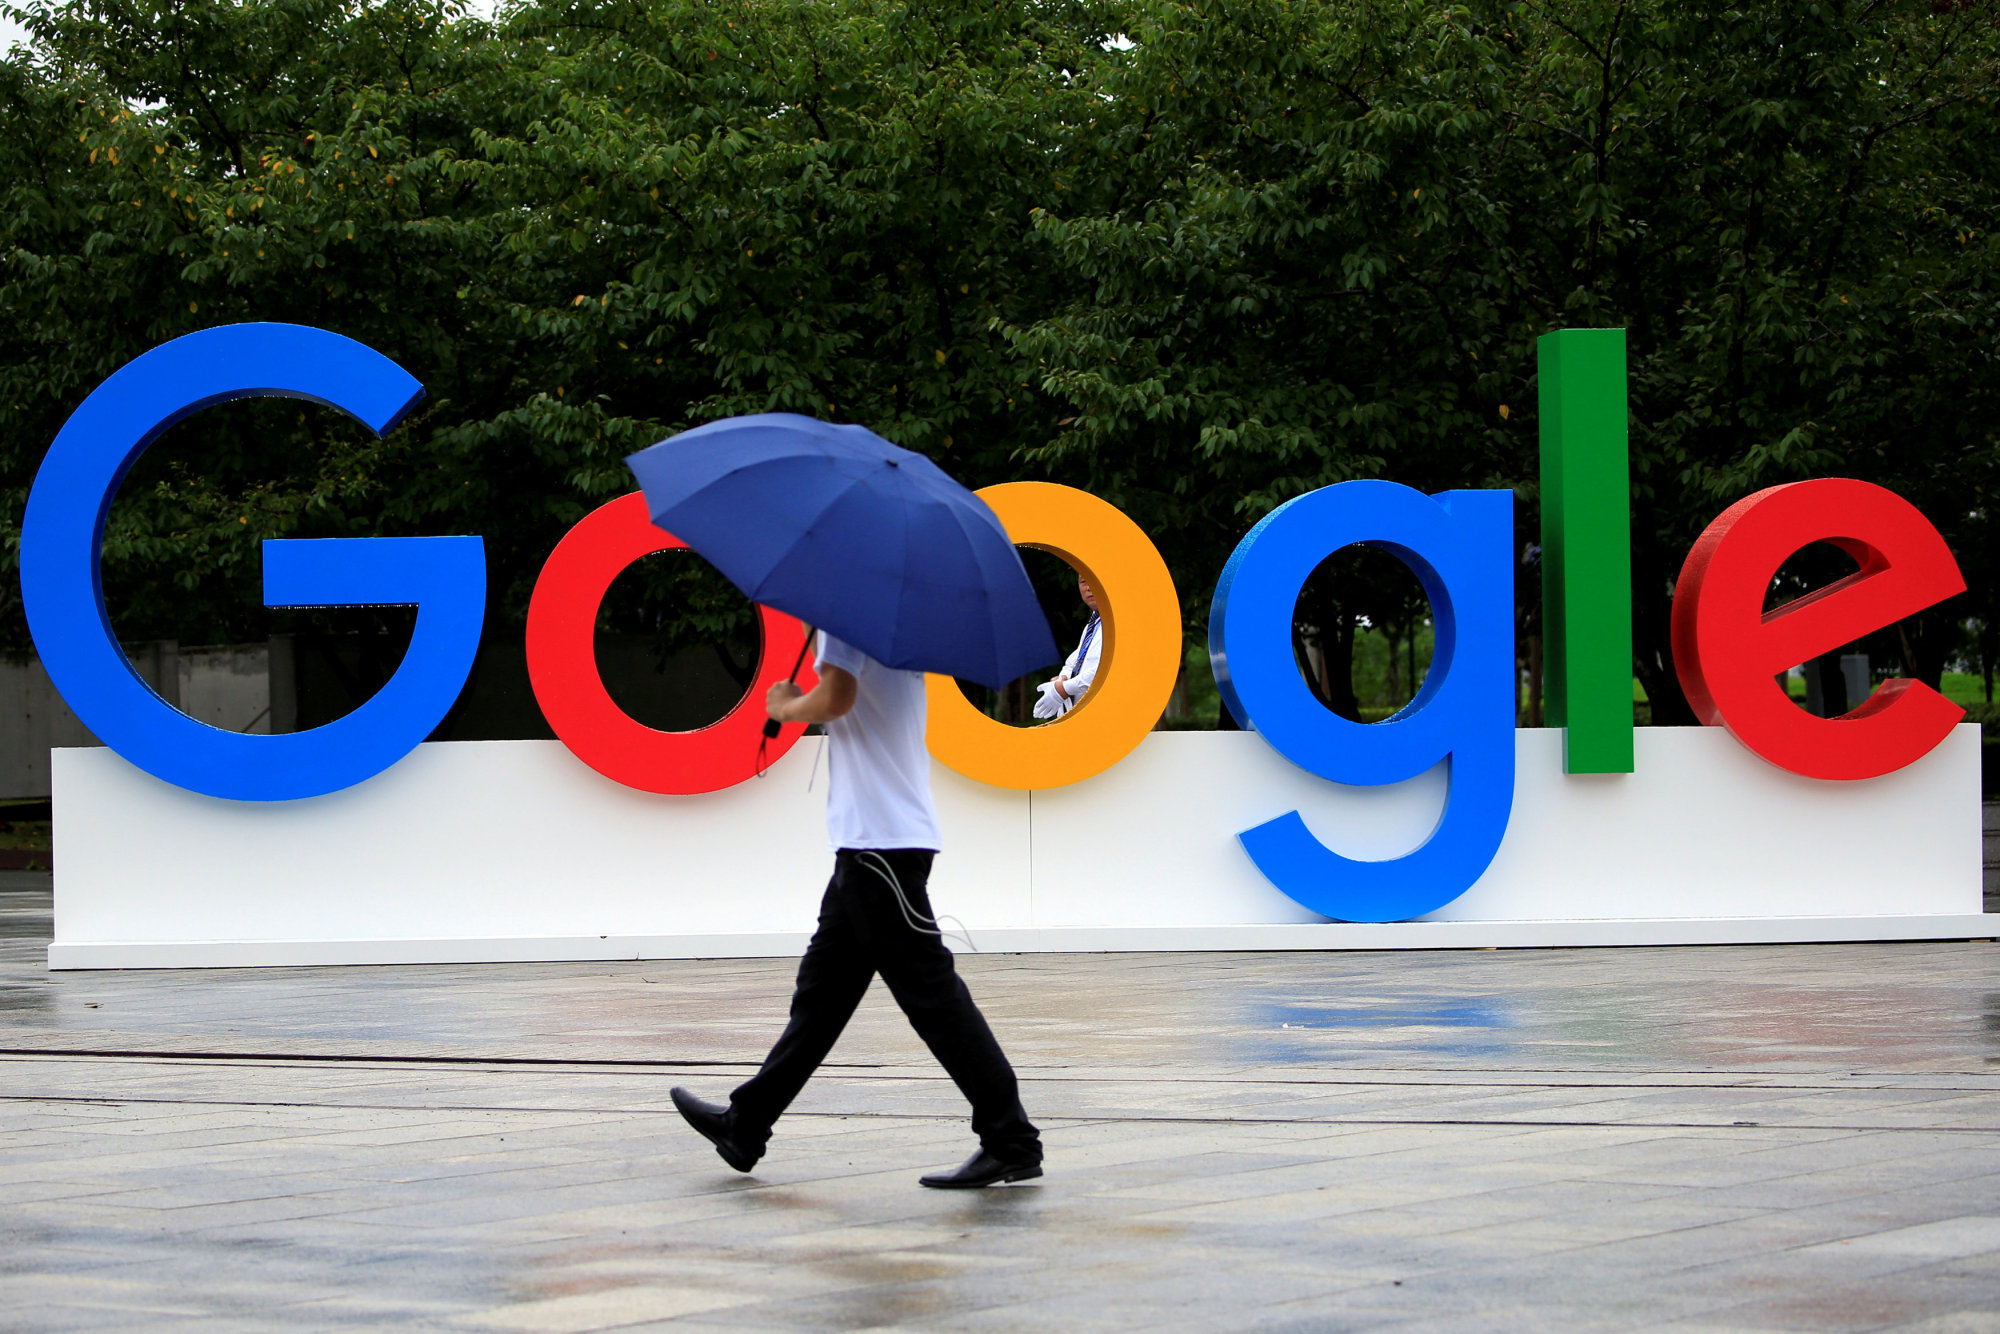 A Google sign is seen during the WAIC (World Artificial Intelligence Conference) in Shanghai in September.